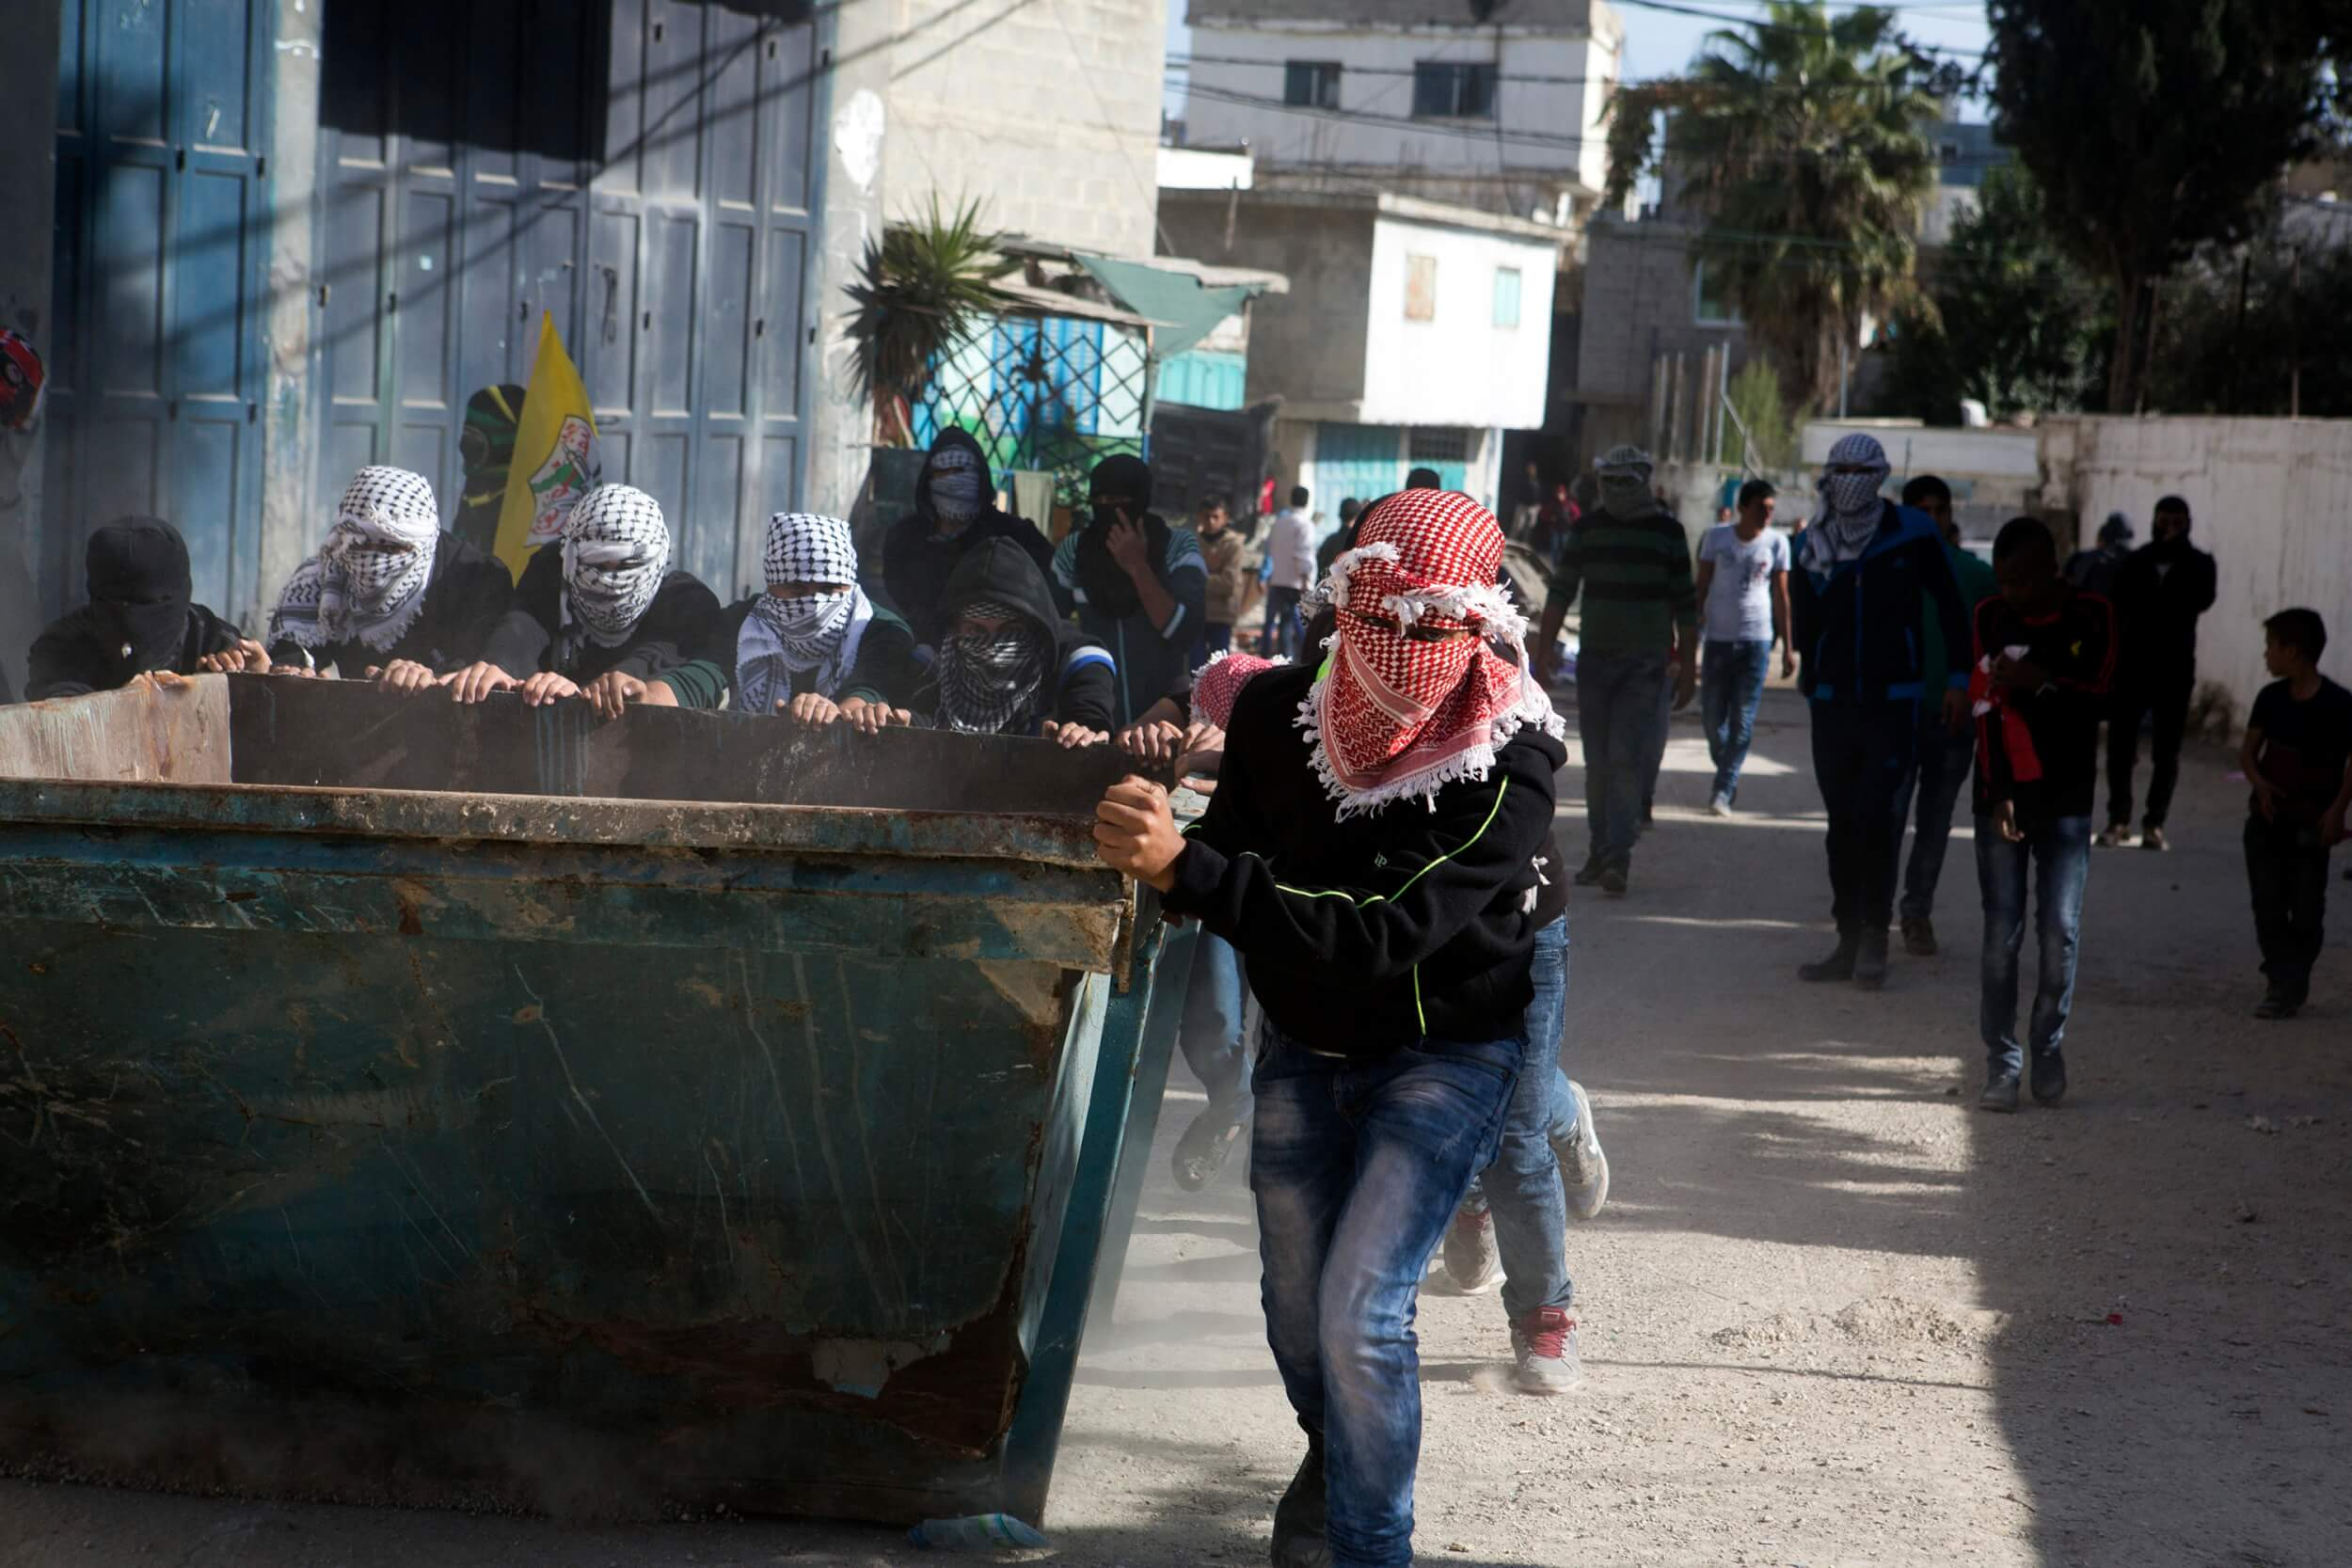 Garbage container becomes fortification after funeral in al-Arroub refugee camp, photo by Anne Paq